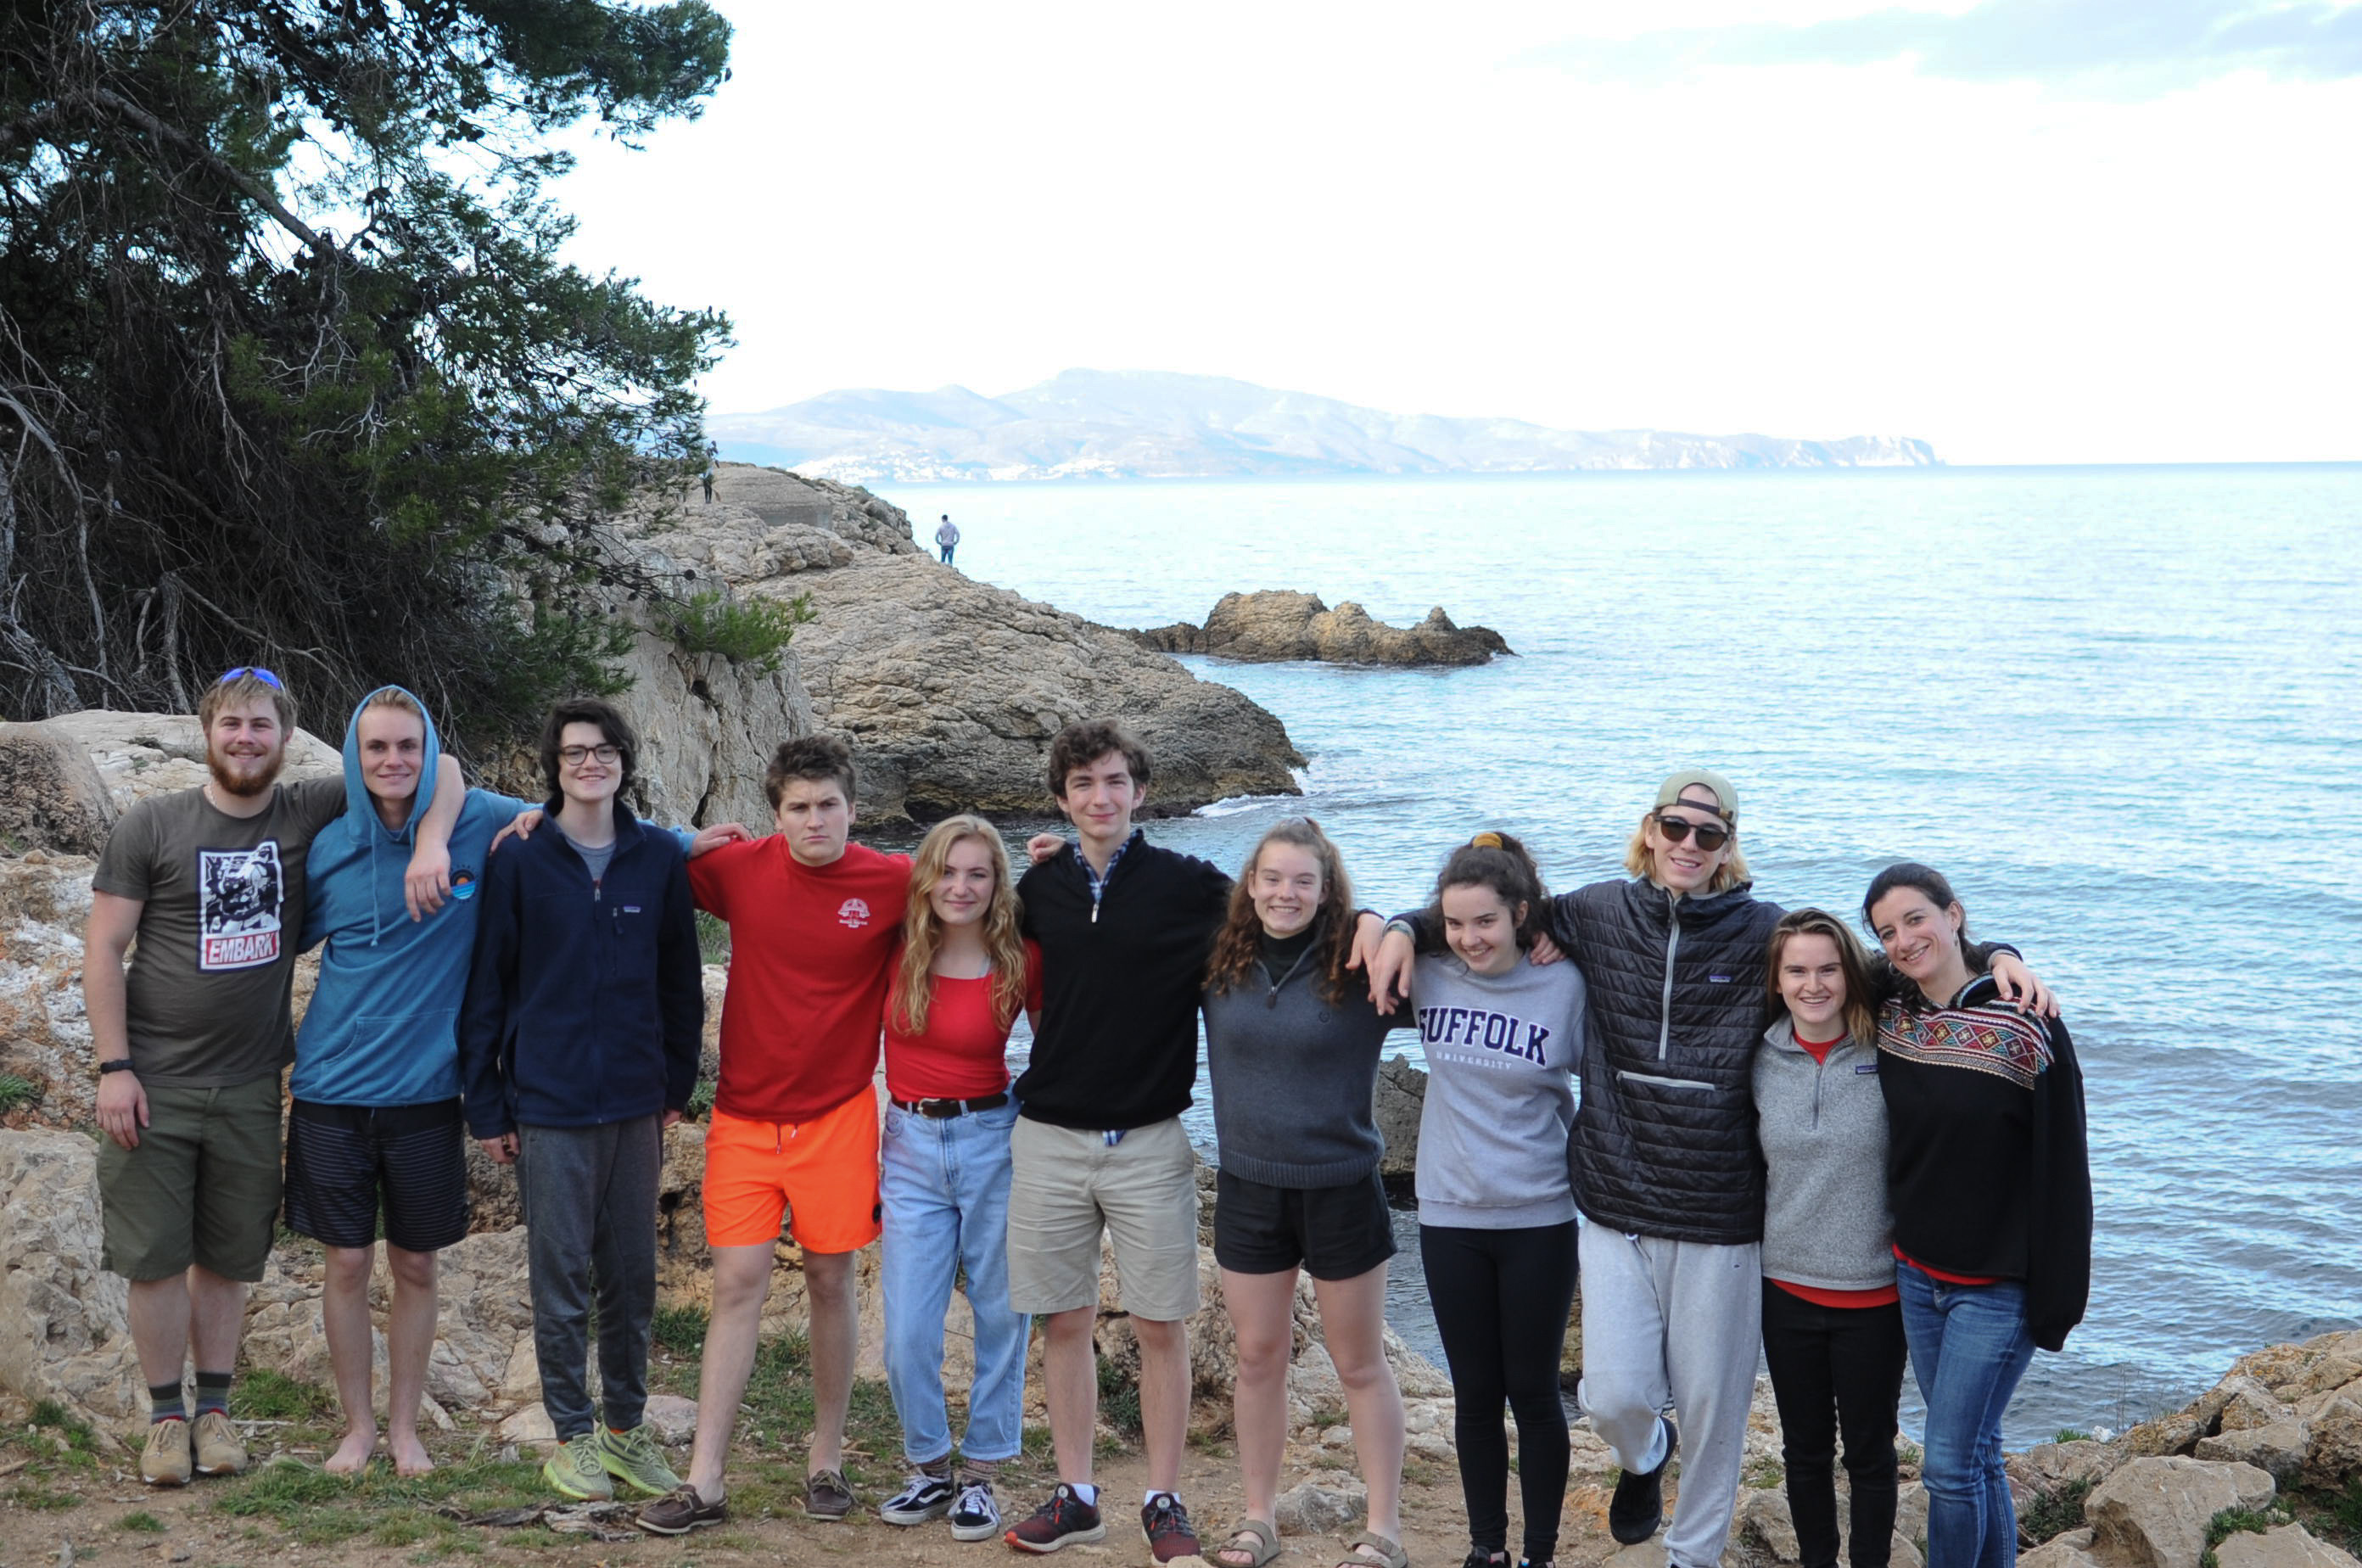 Proctor en Segovia explores the Catalan coast